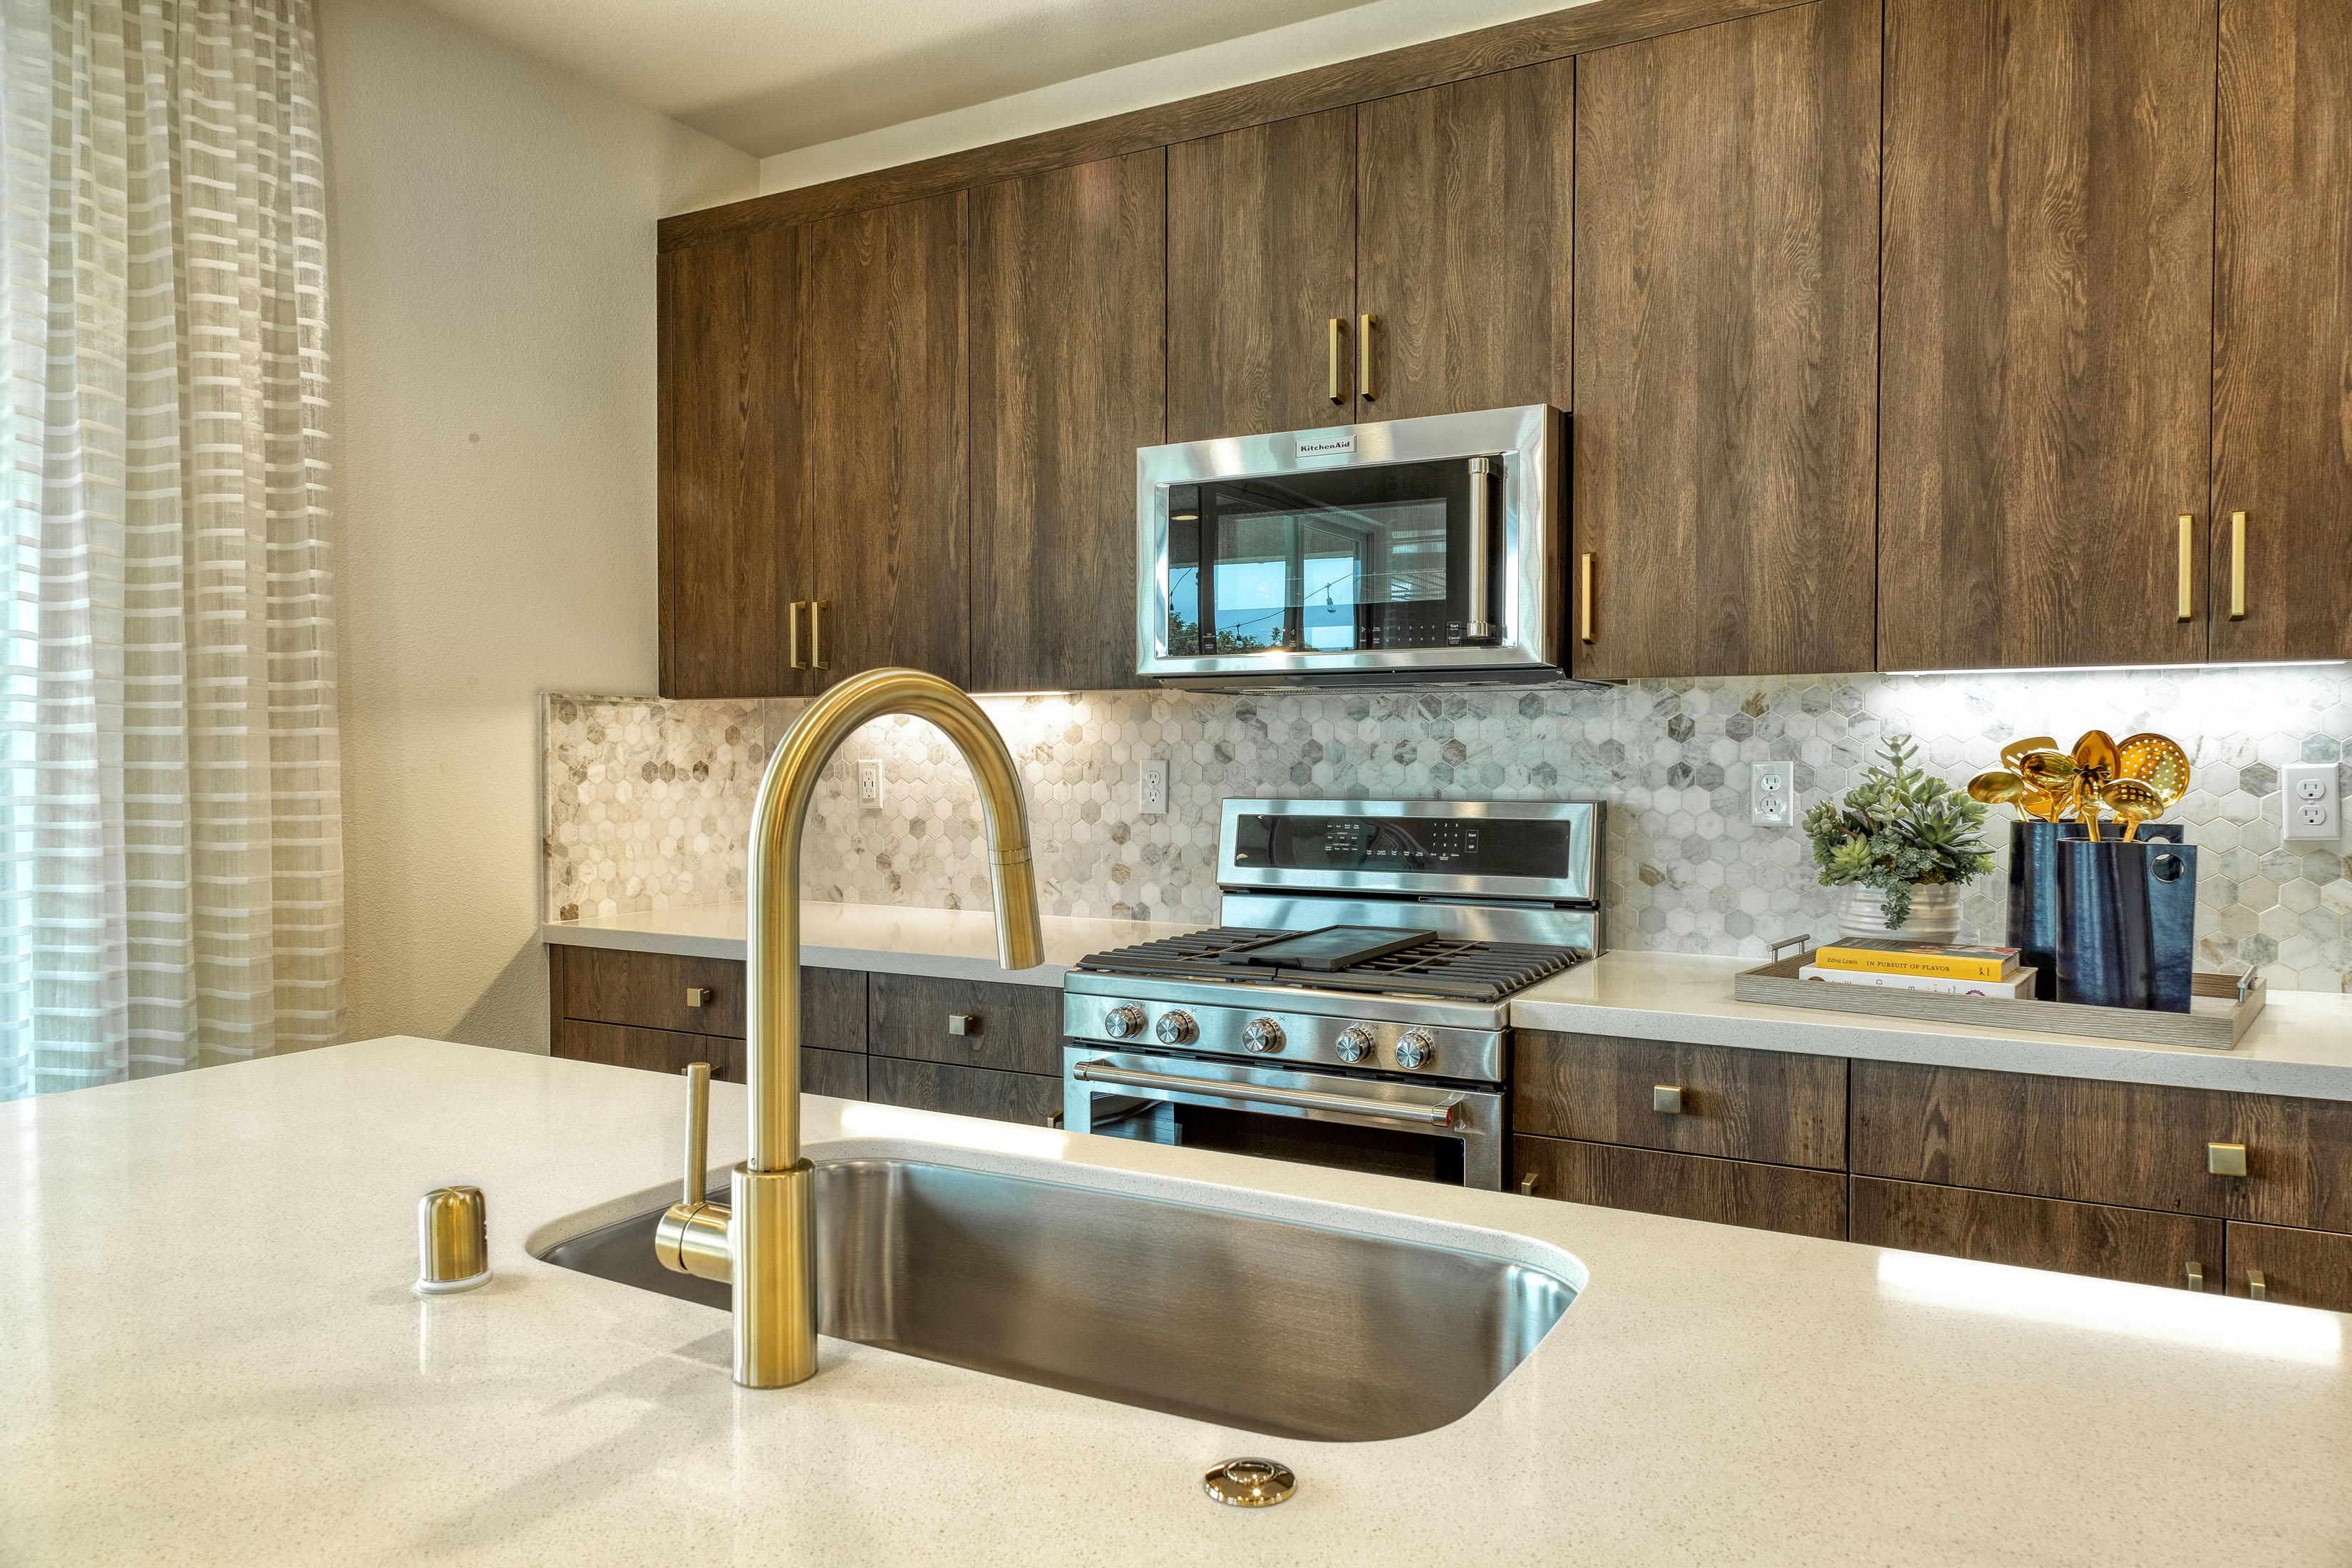 Mayfair at Westfield Model Homes Now for Sale in Hollister